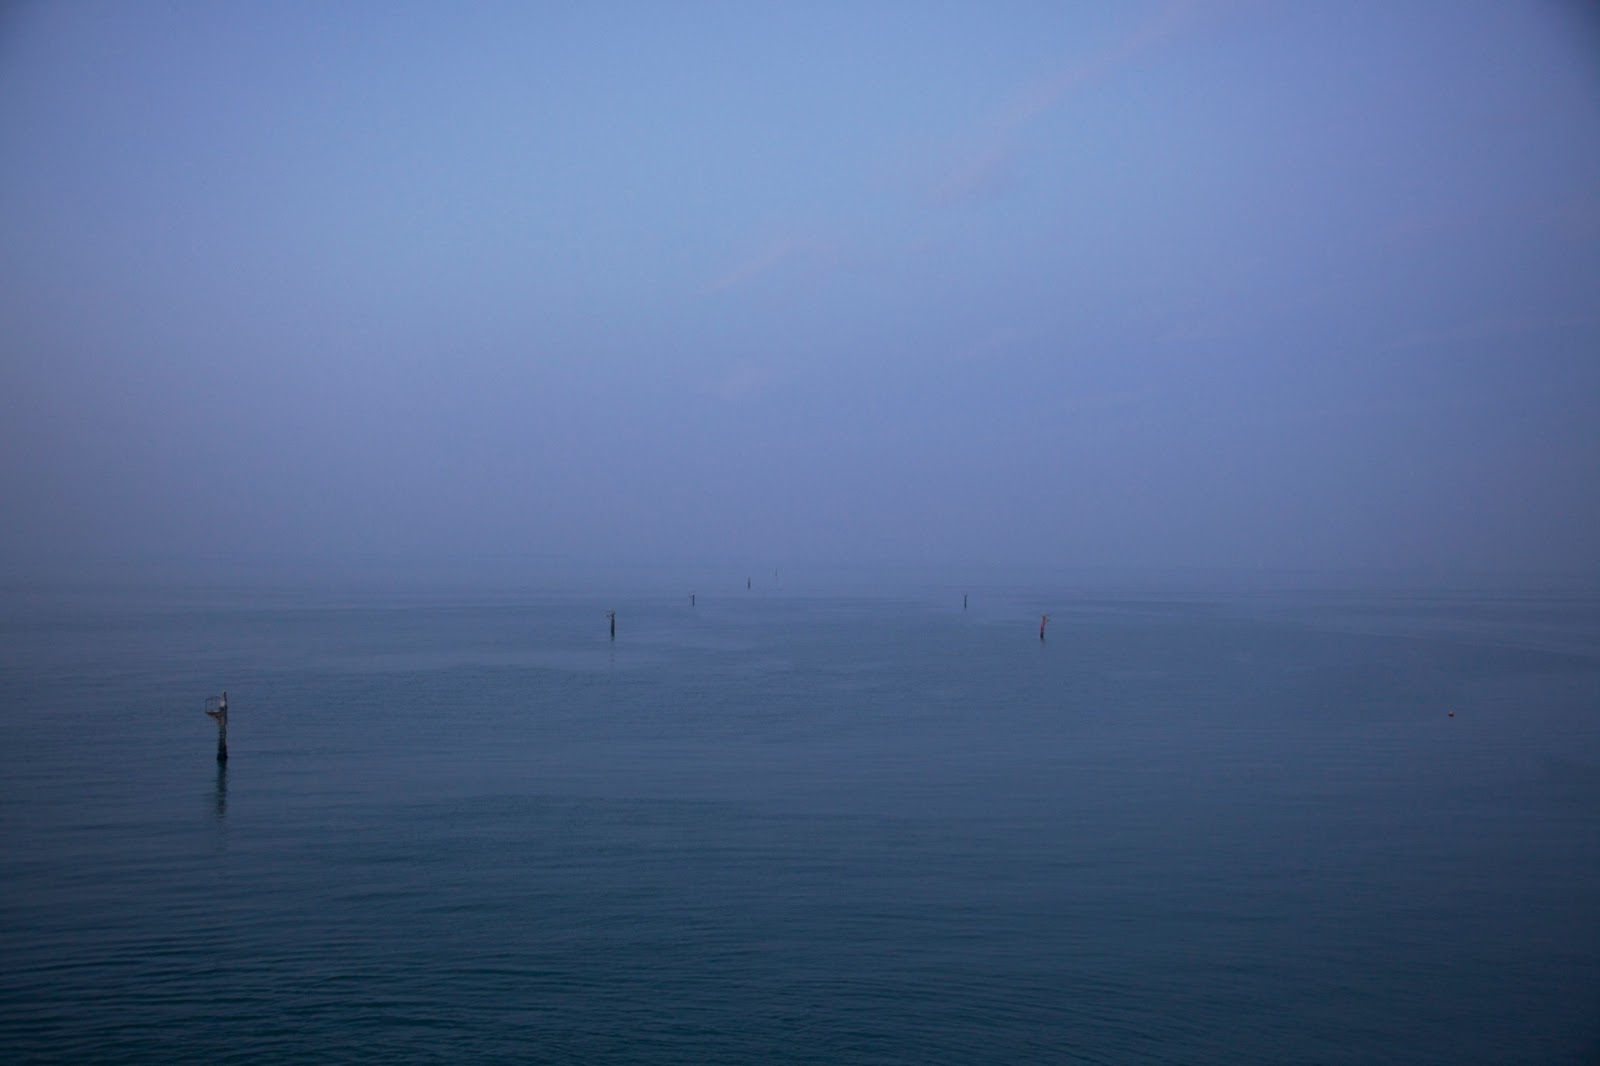 Photograph, Chris Steele-Perkins: G.B. Isle of Wight. Leaving Fishbourne on the car ferry to Portsmouth.